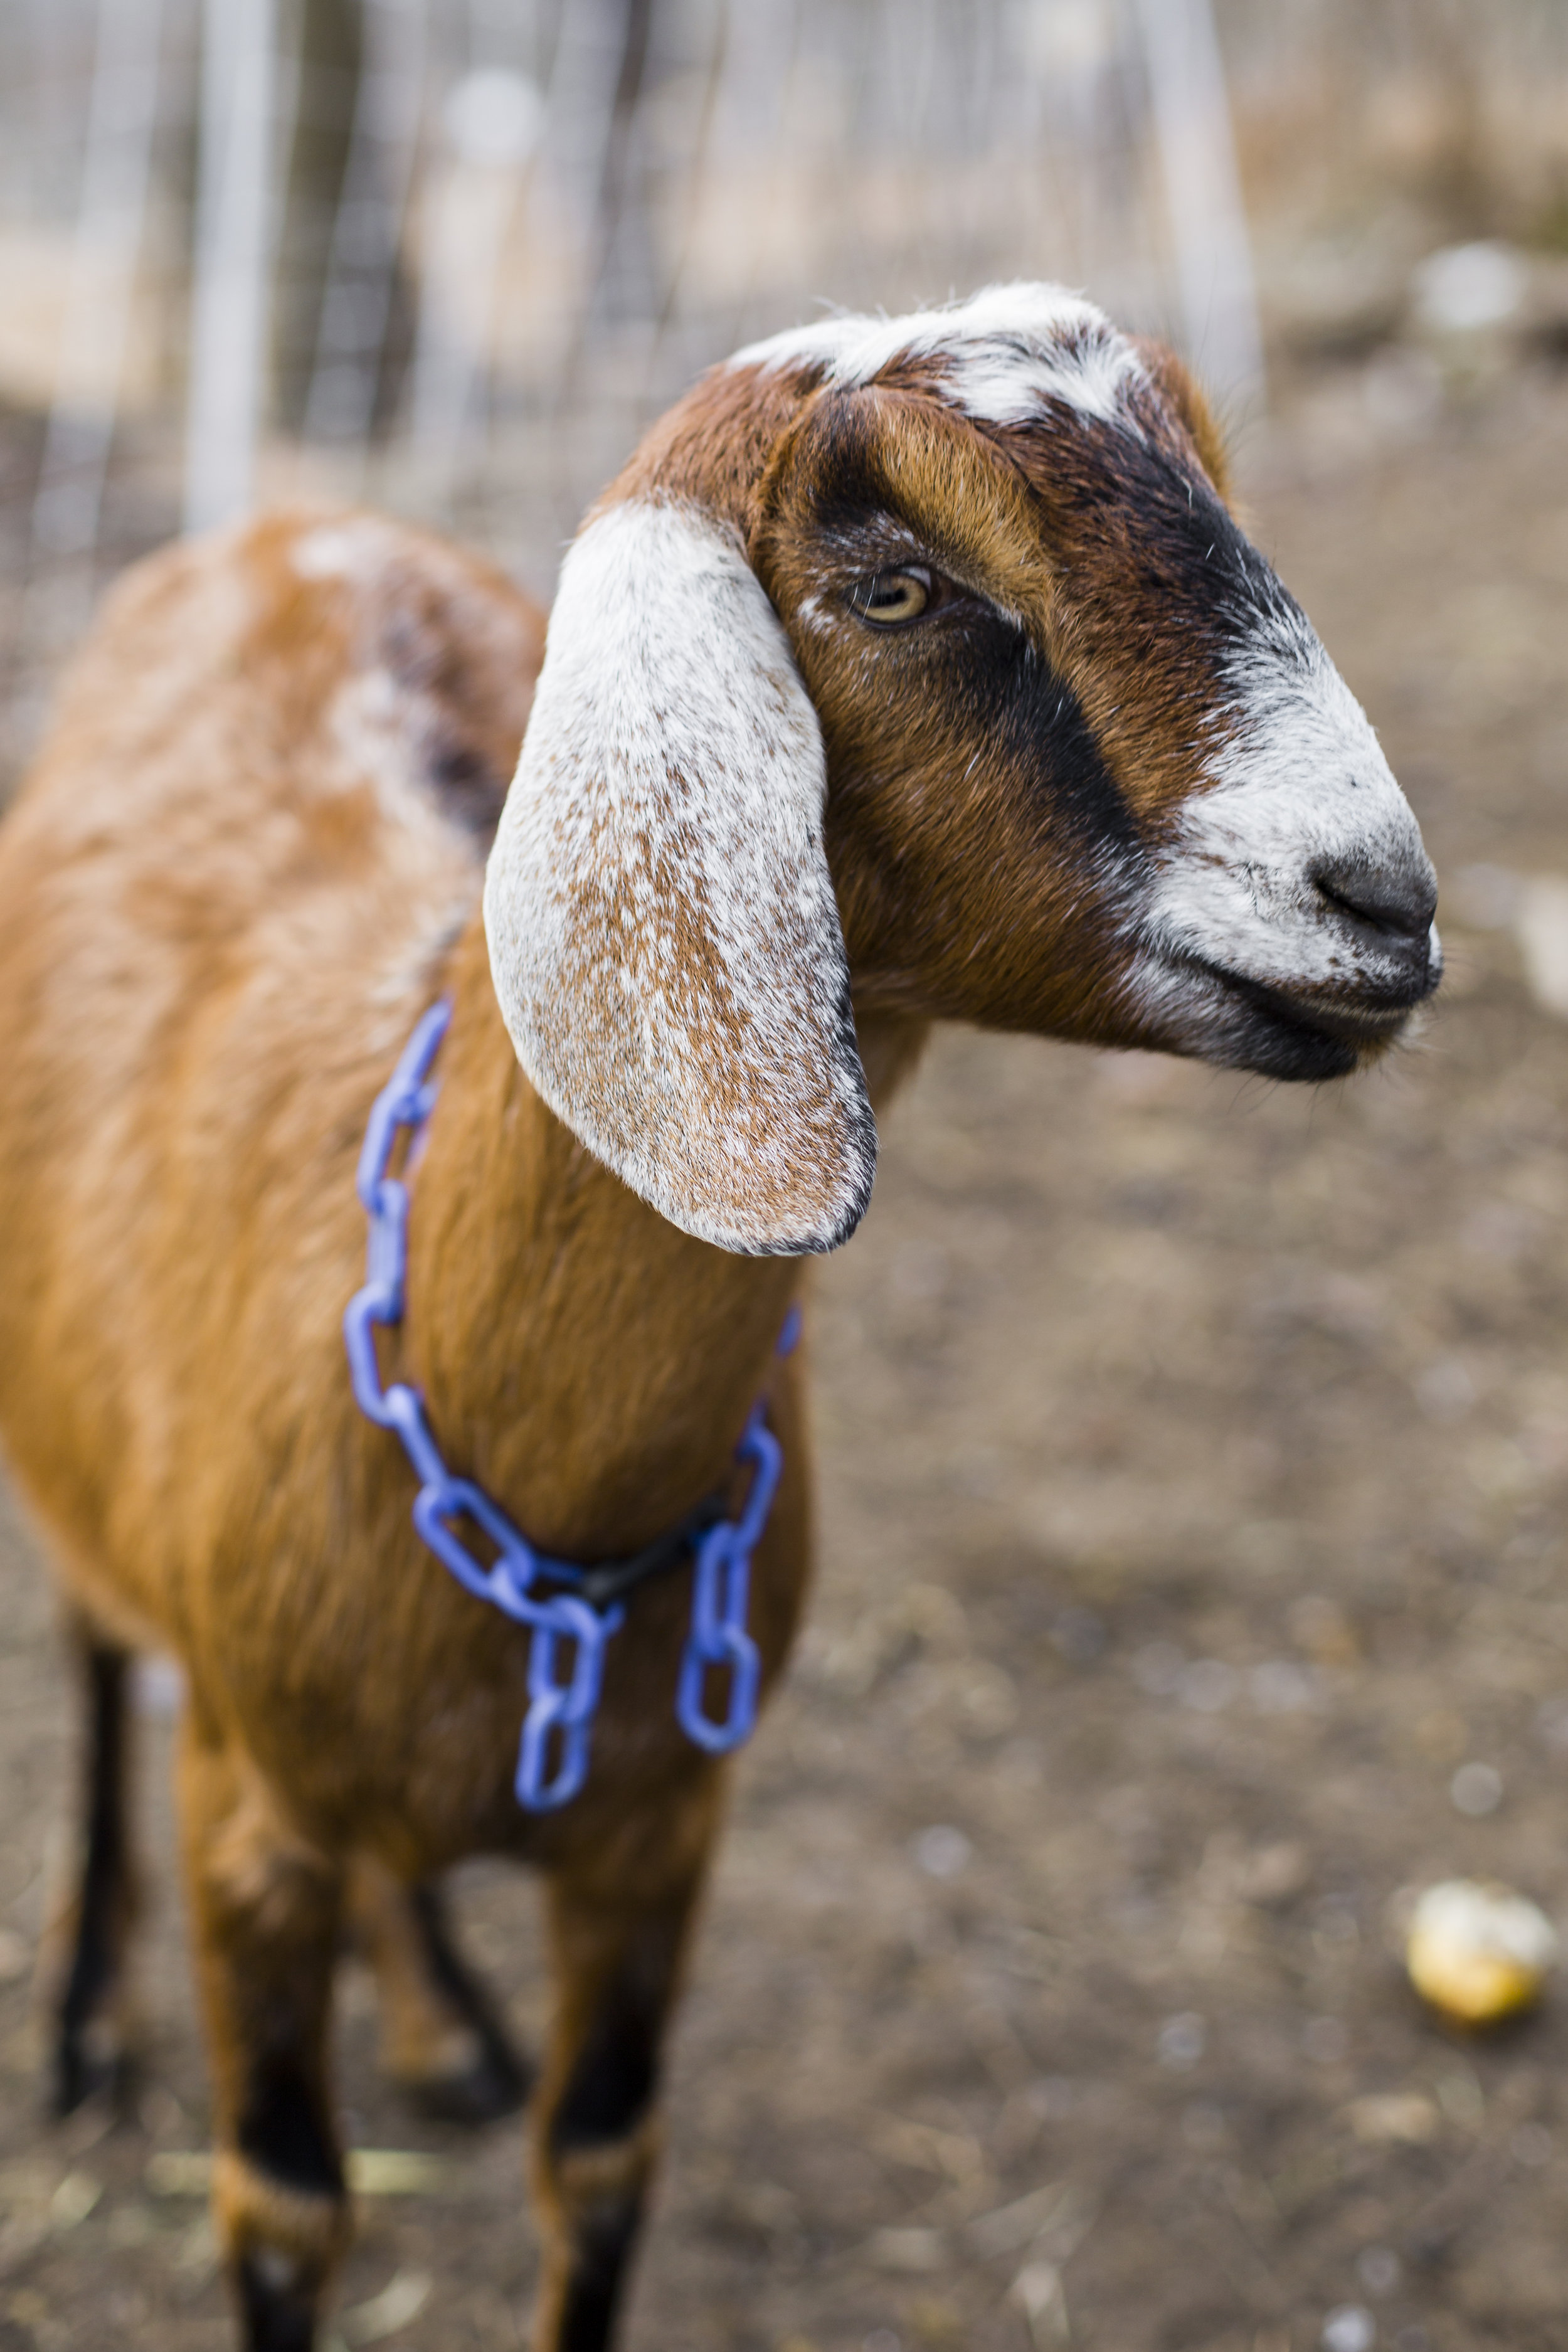 Butter Bailey -  Butter is the only female on Team Hobo, but she gets along well with the others. She rejoined Allegheny GoatScape in June 2017 after spending the winter and spring away from her team. She is slightly smaller and younger than her counterparts, but can eat knotweed and honeysuckle with the best of them!